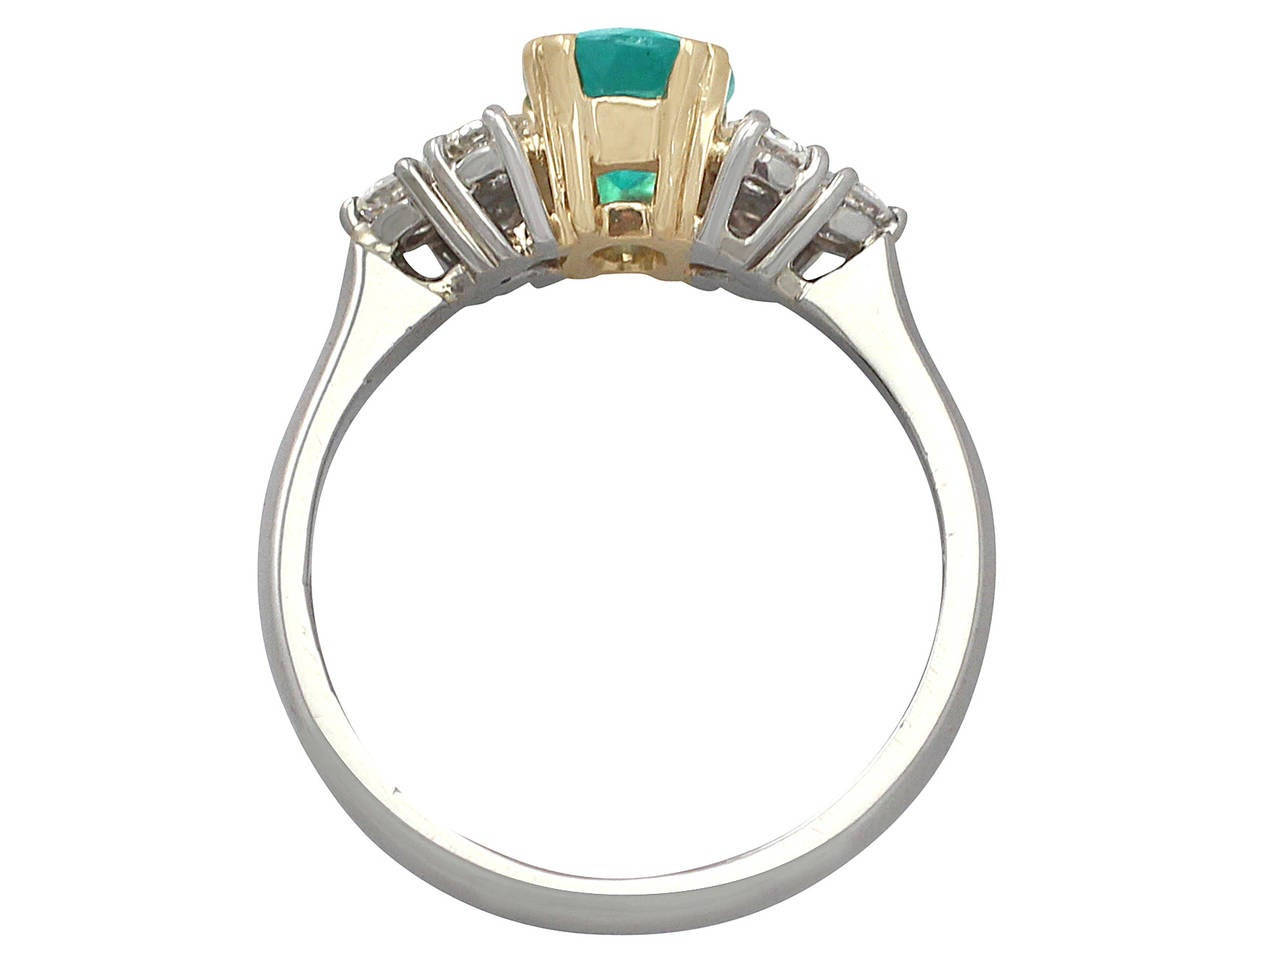 1990s 1.06 Carat Emerald and Diamond Platinum Cocktail Ring 5